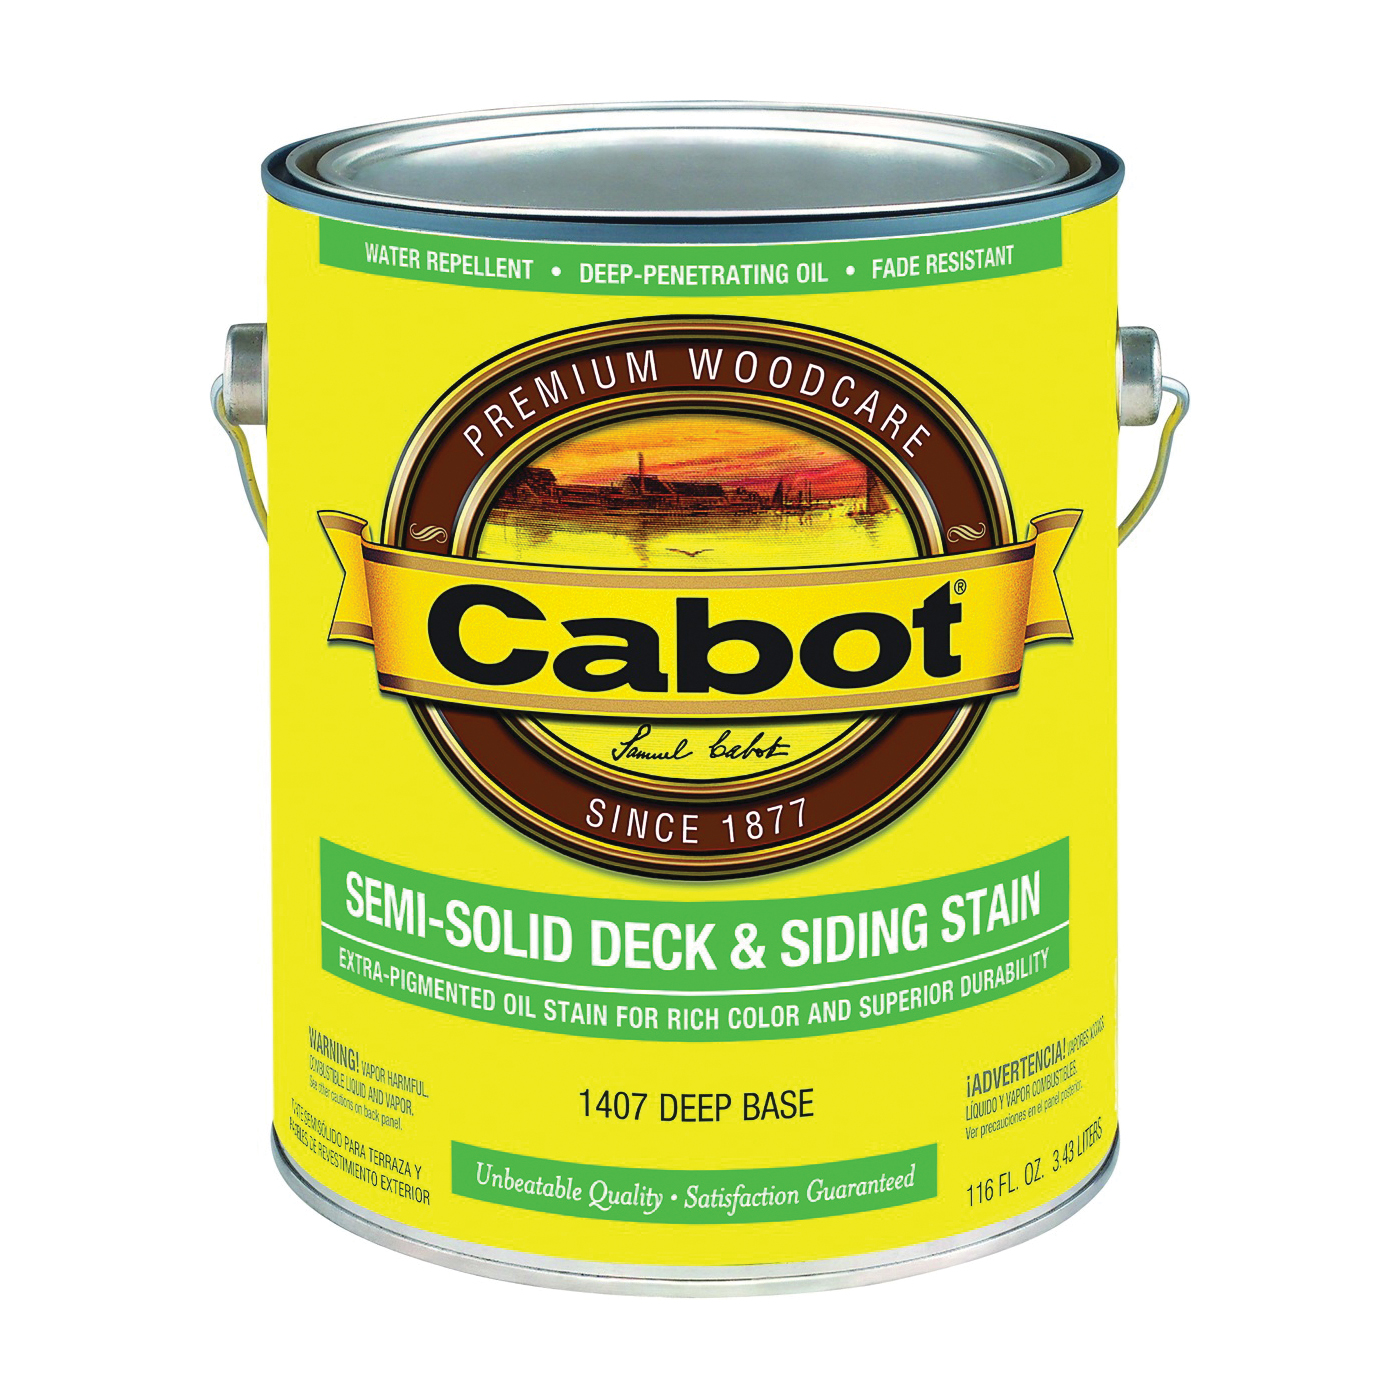 Picture of Cabot 1407 Deck and Siding Stain, Natural Flat, Deep Base, Liquid, 1 gal